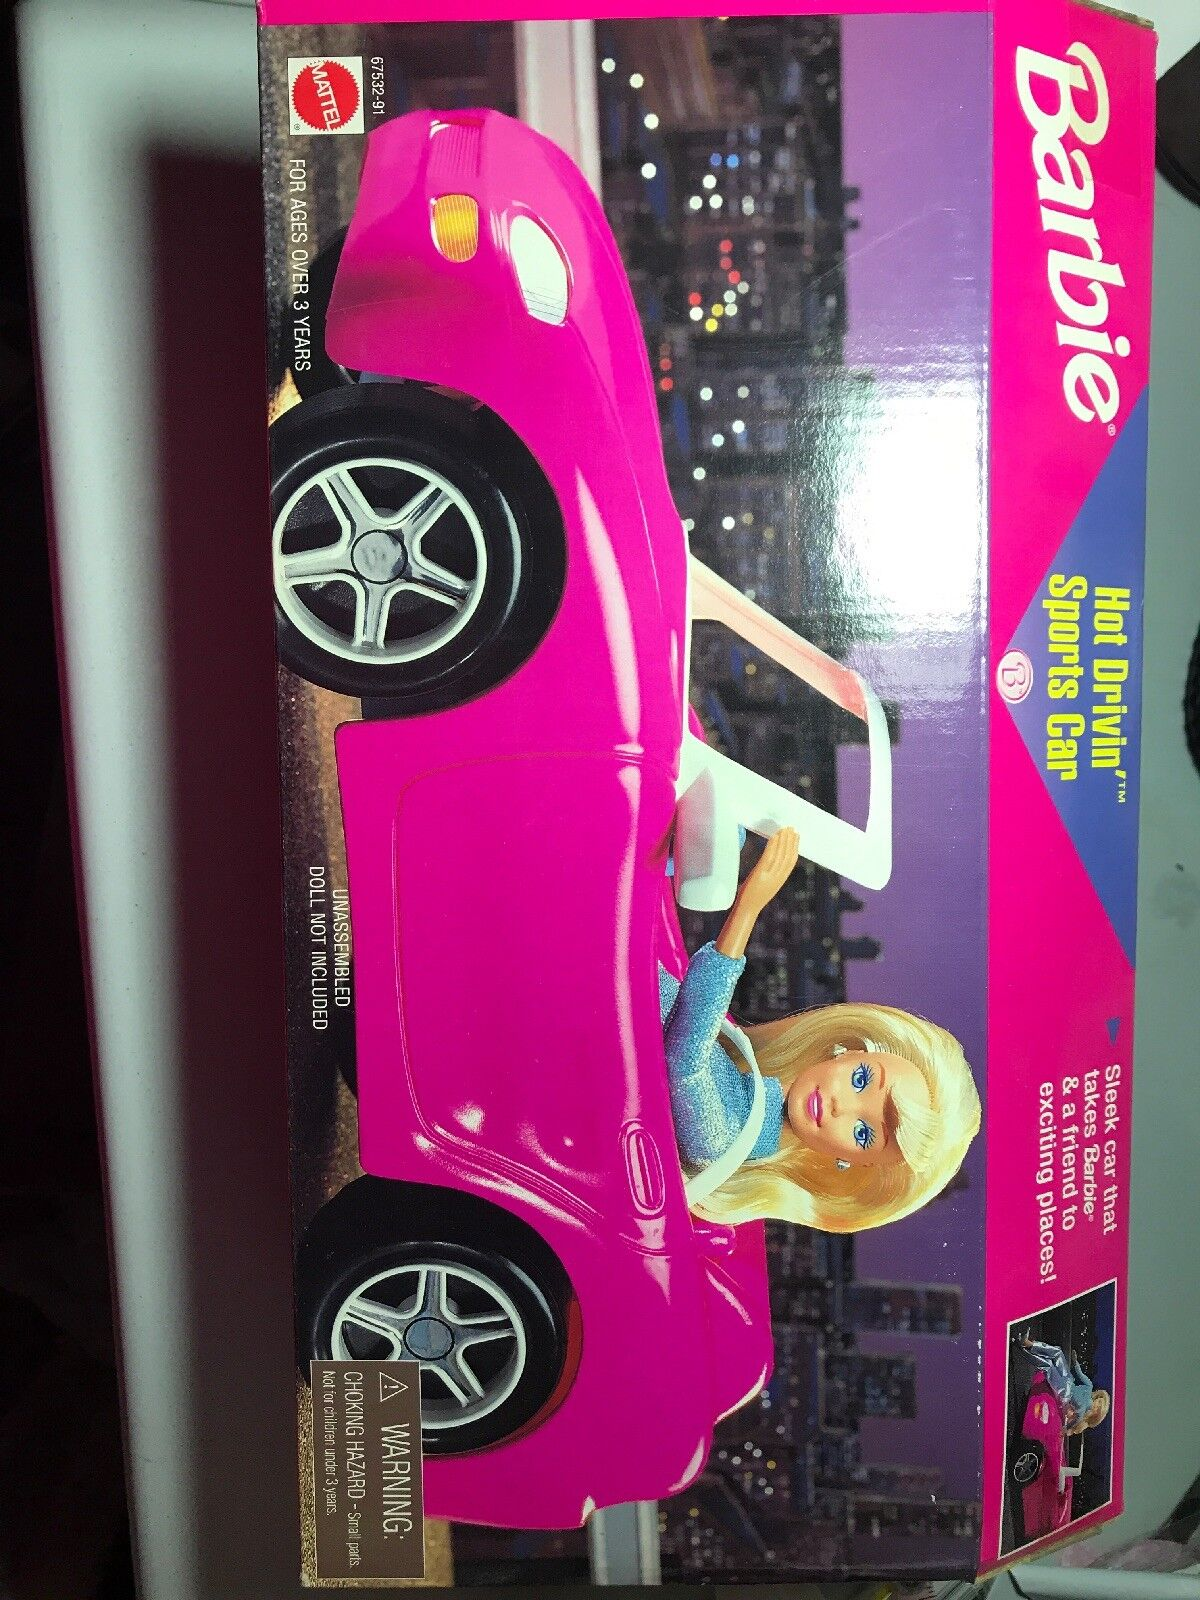 Barbie Hot Drivin' SPORTS CAR Congreenible Vehicle (1996 Mattel) PINK